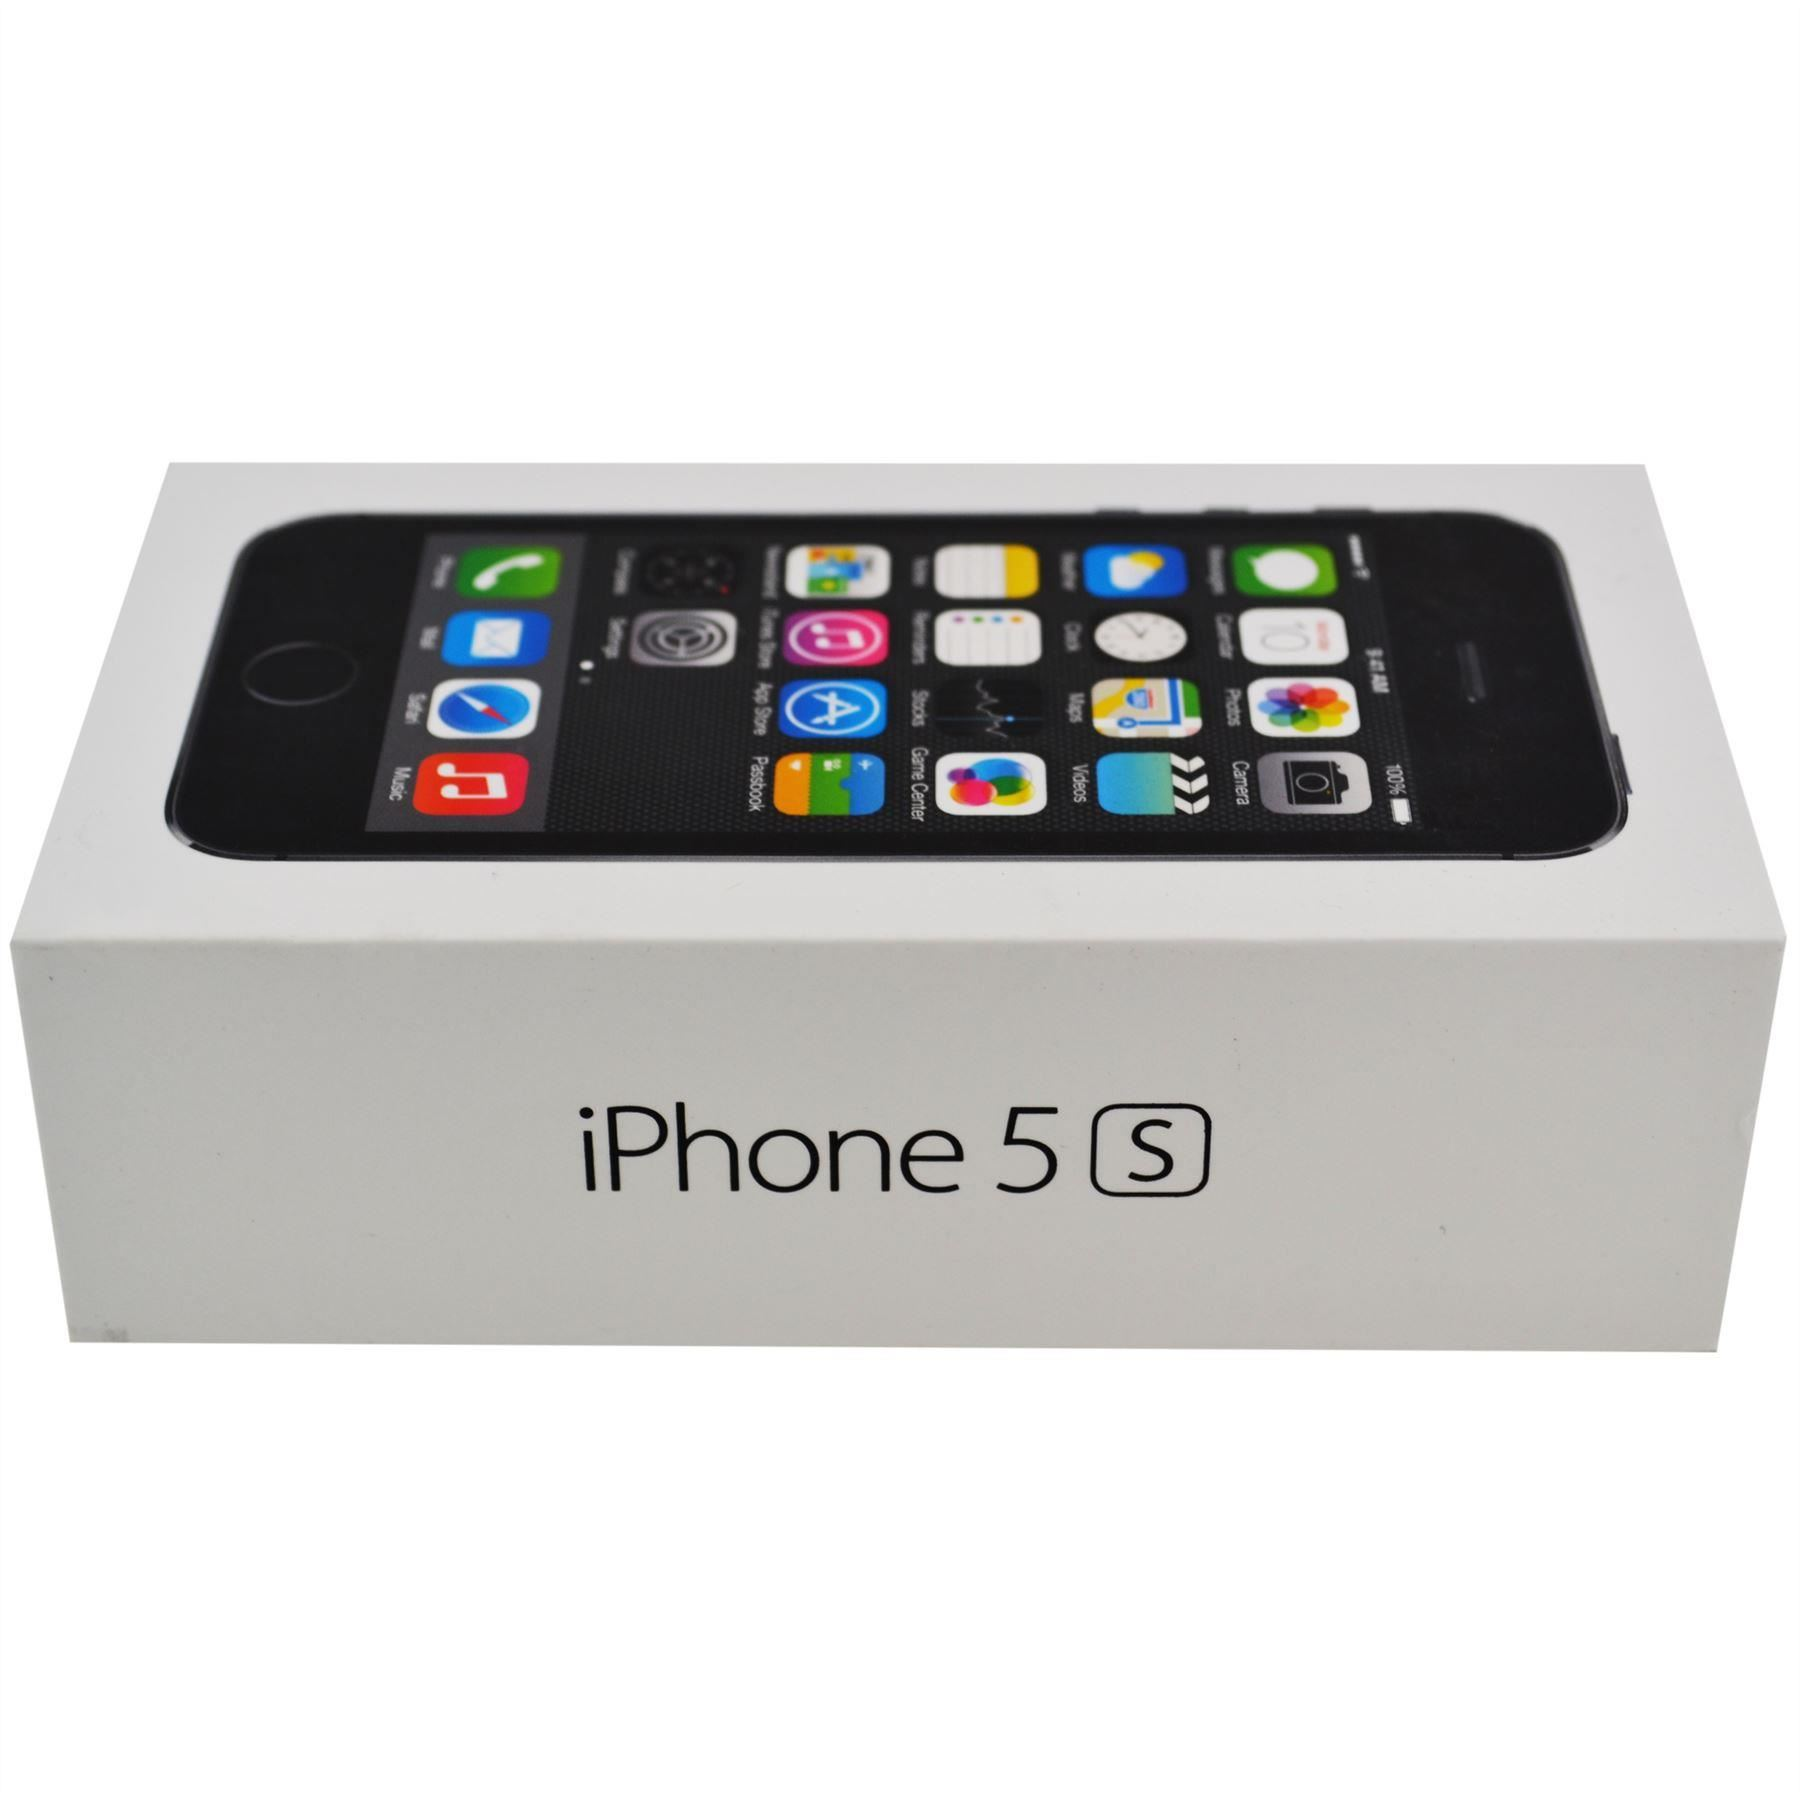 apple iphone 5s 32gb space grey factory unlocked refurbished. Black Bedroom Furniture Sets. Home Design Ideas